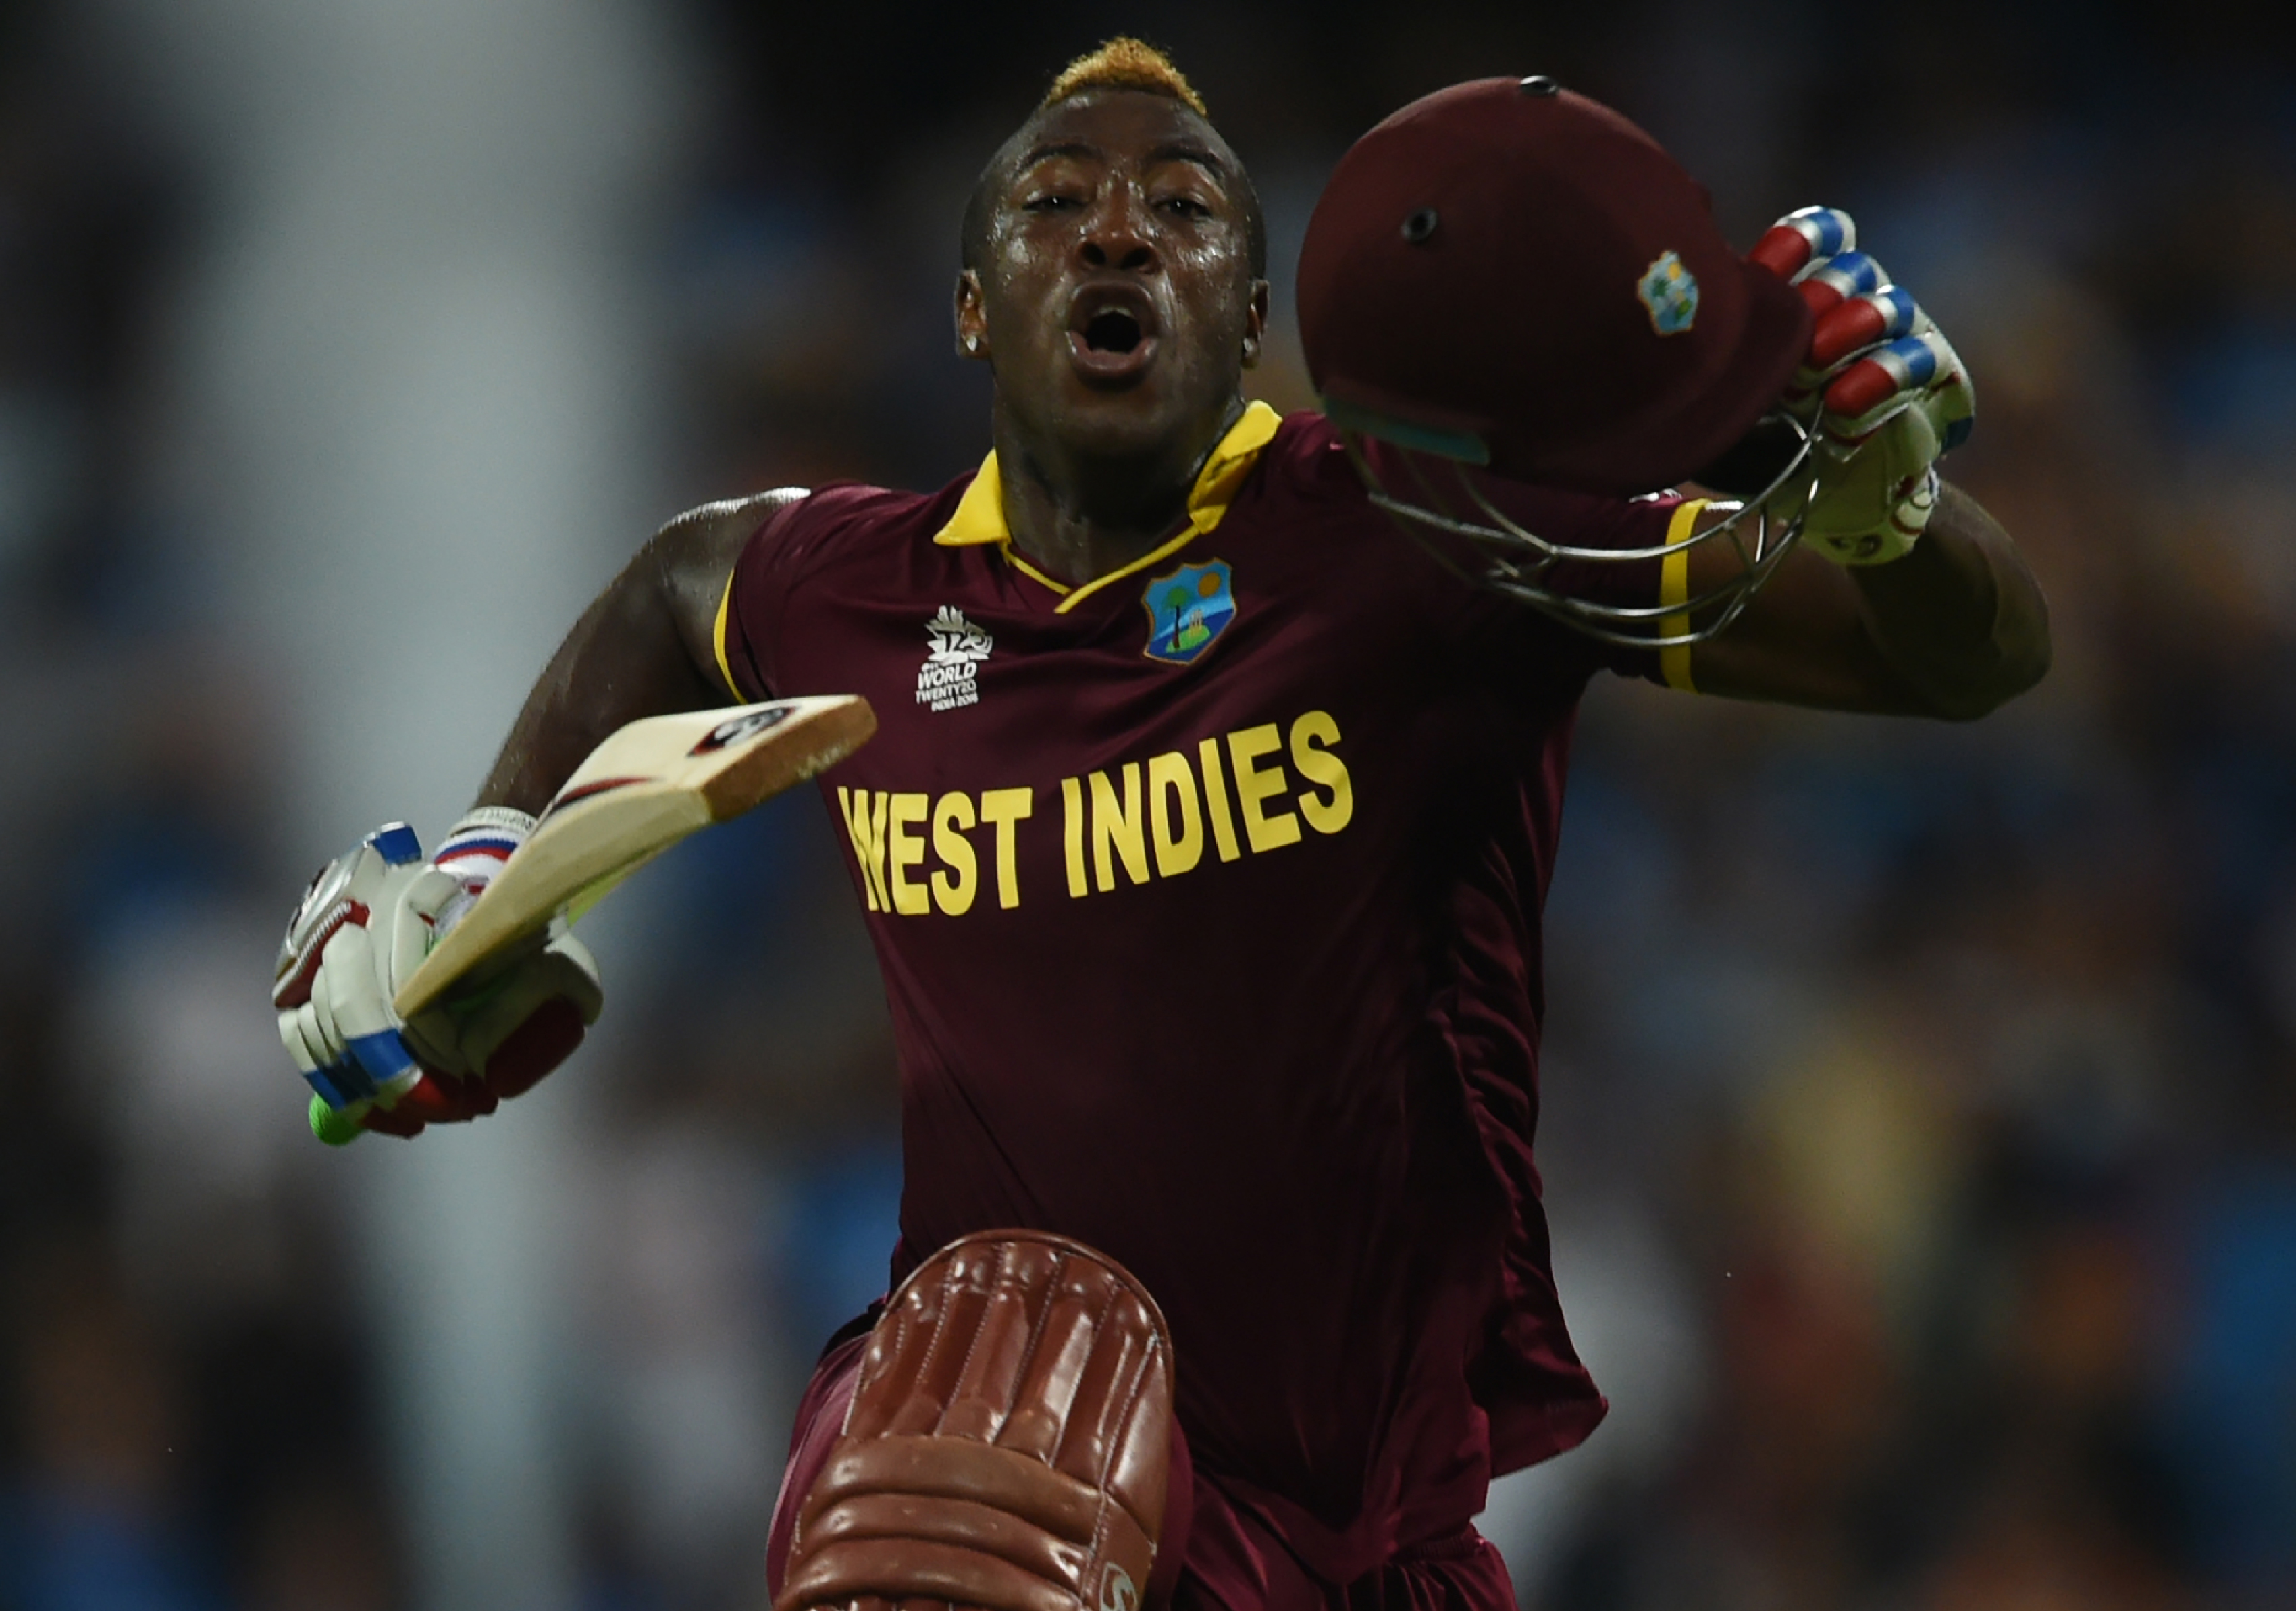 West Indies's Andre Russell celebrates after scoring the winning runs during the World T20 men's semi-final match between India and West Indies at the Wankhede stadium in Mumbai on March 31, 2016. / AFP / INDRANIL MUKHERJEE